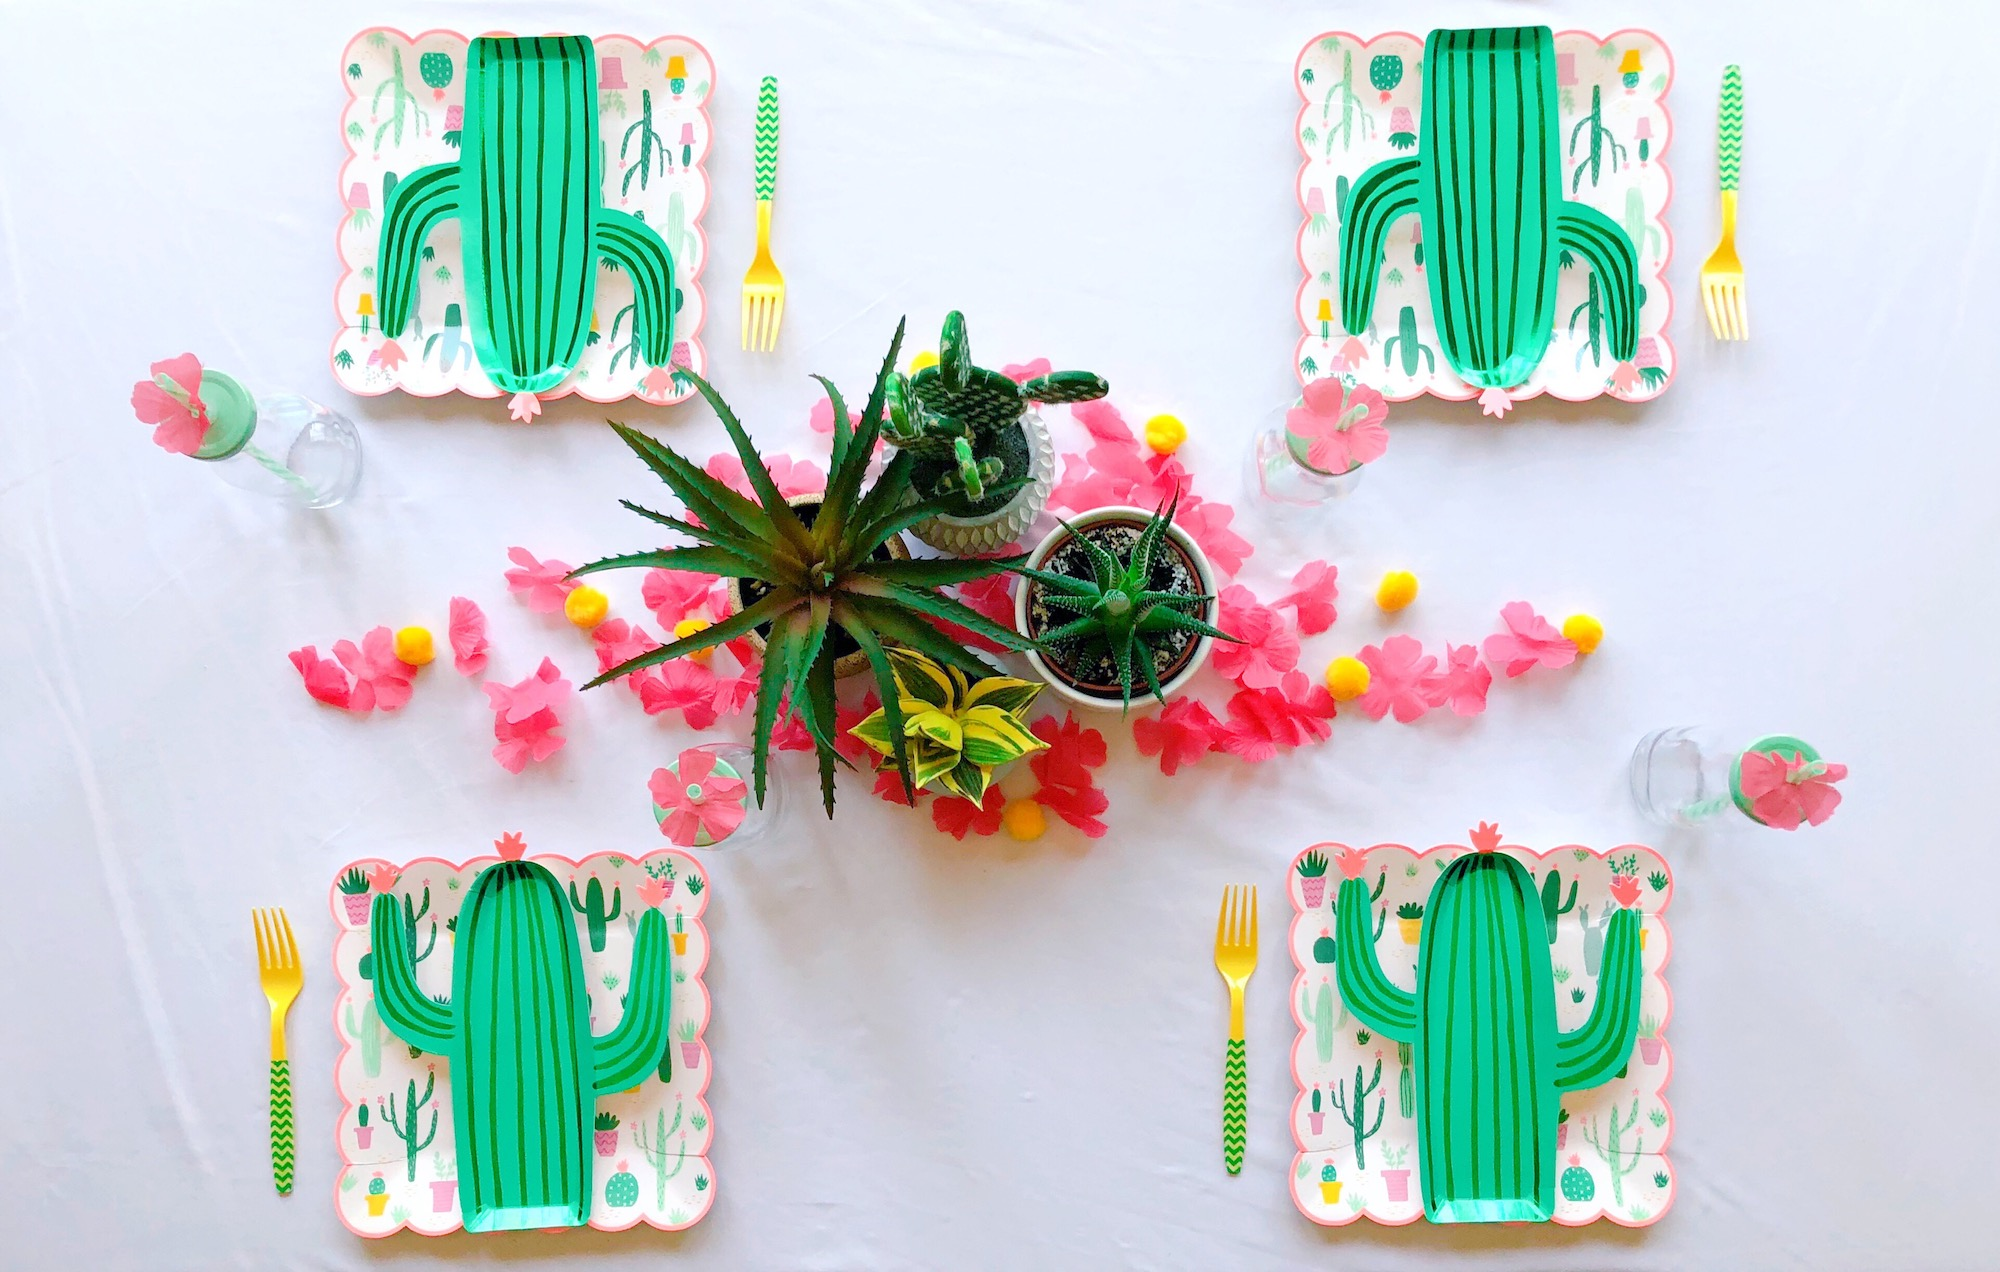 Cactus Party Table Setting Decor_Design Organize Party.JPG